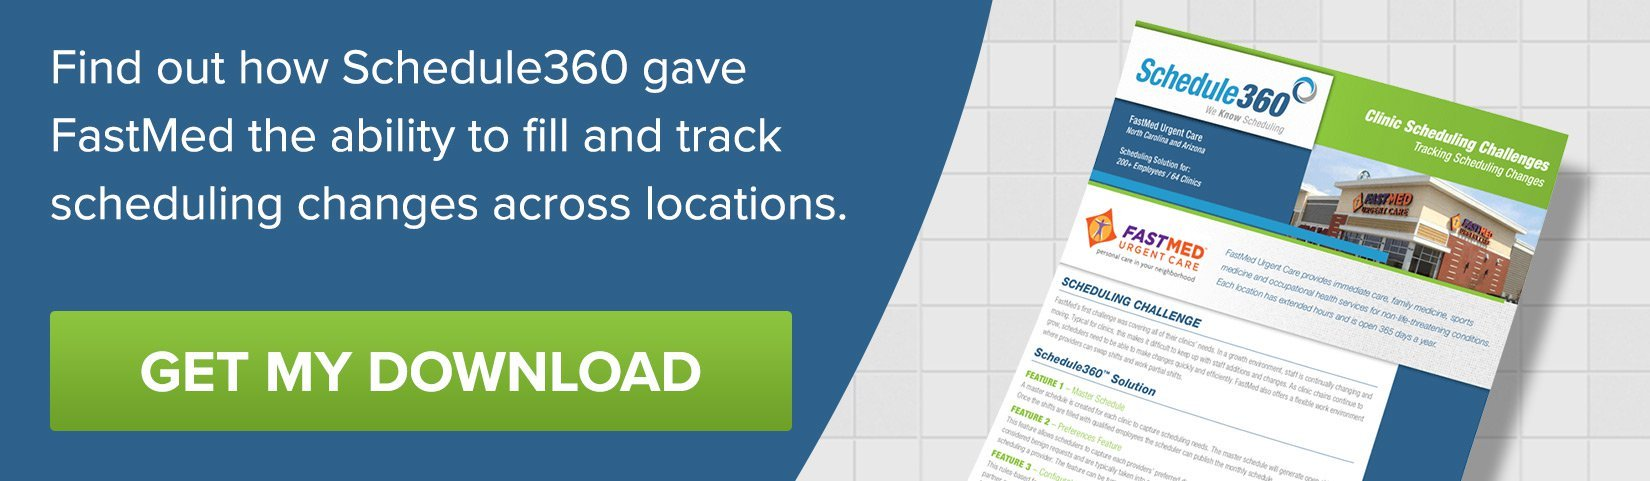 Find out how Schedule360 gave FastMed the ability to fill and track scheduling changes across locations.